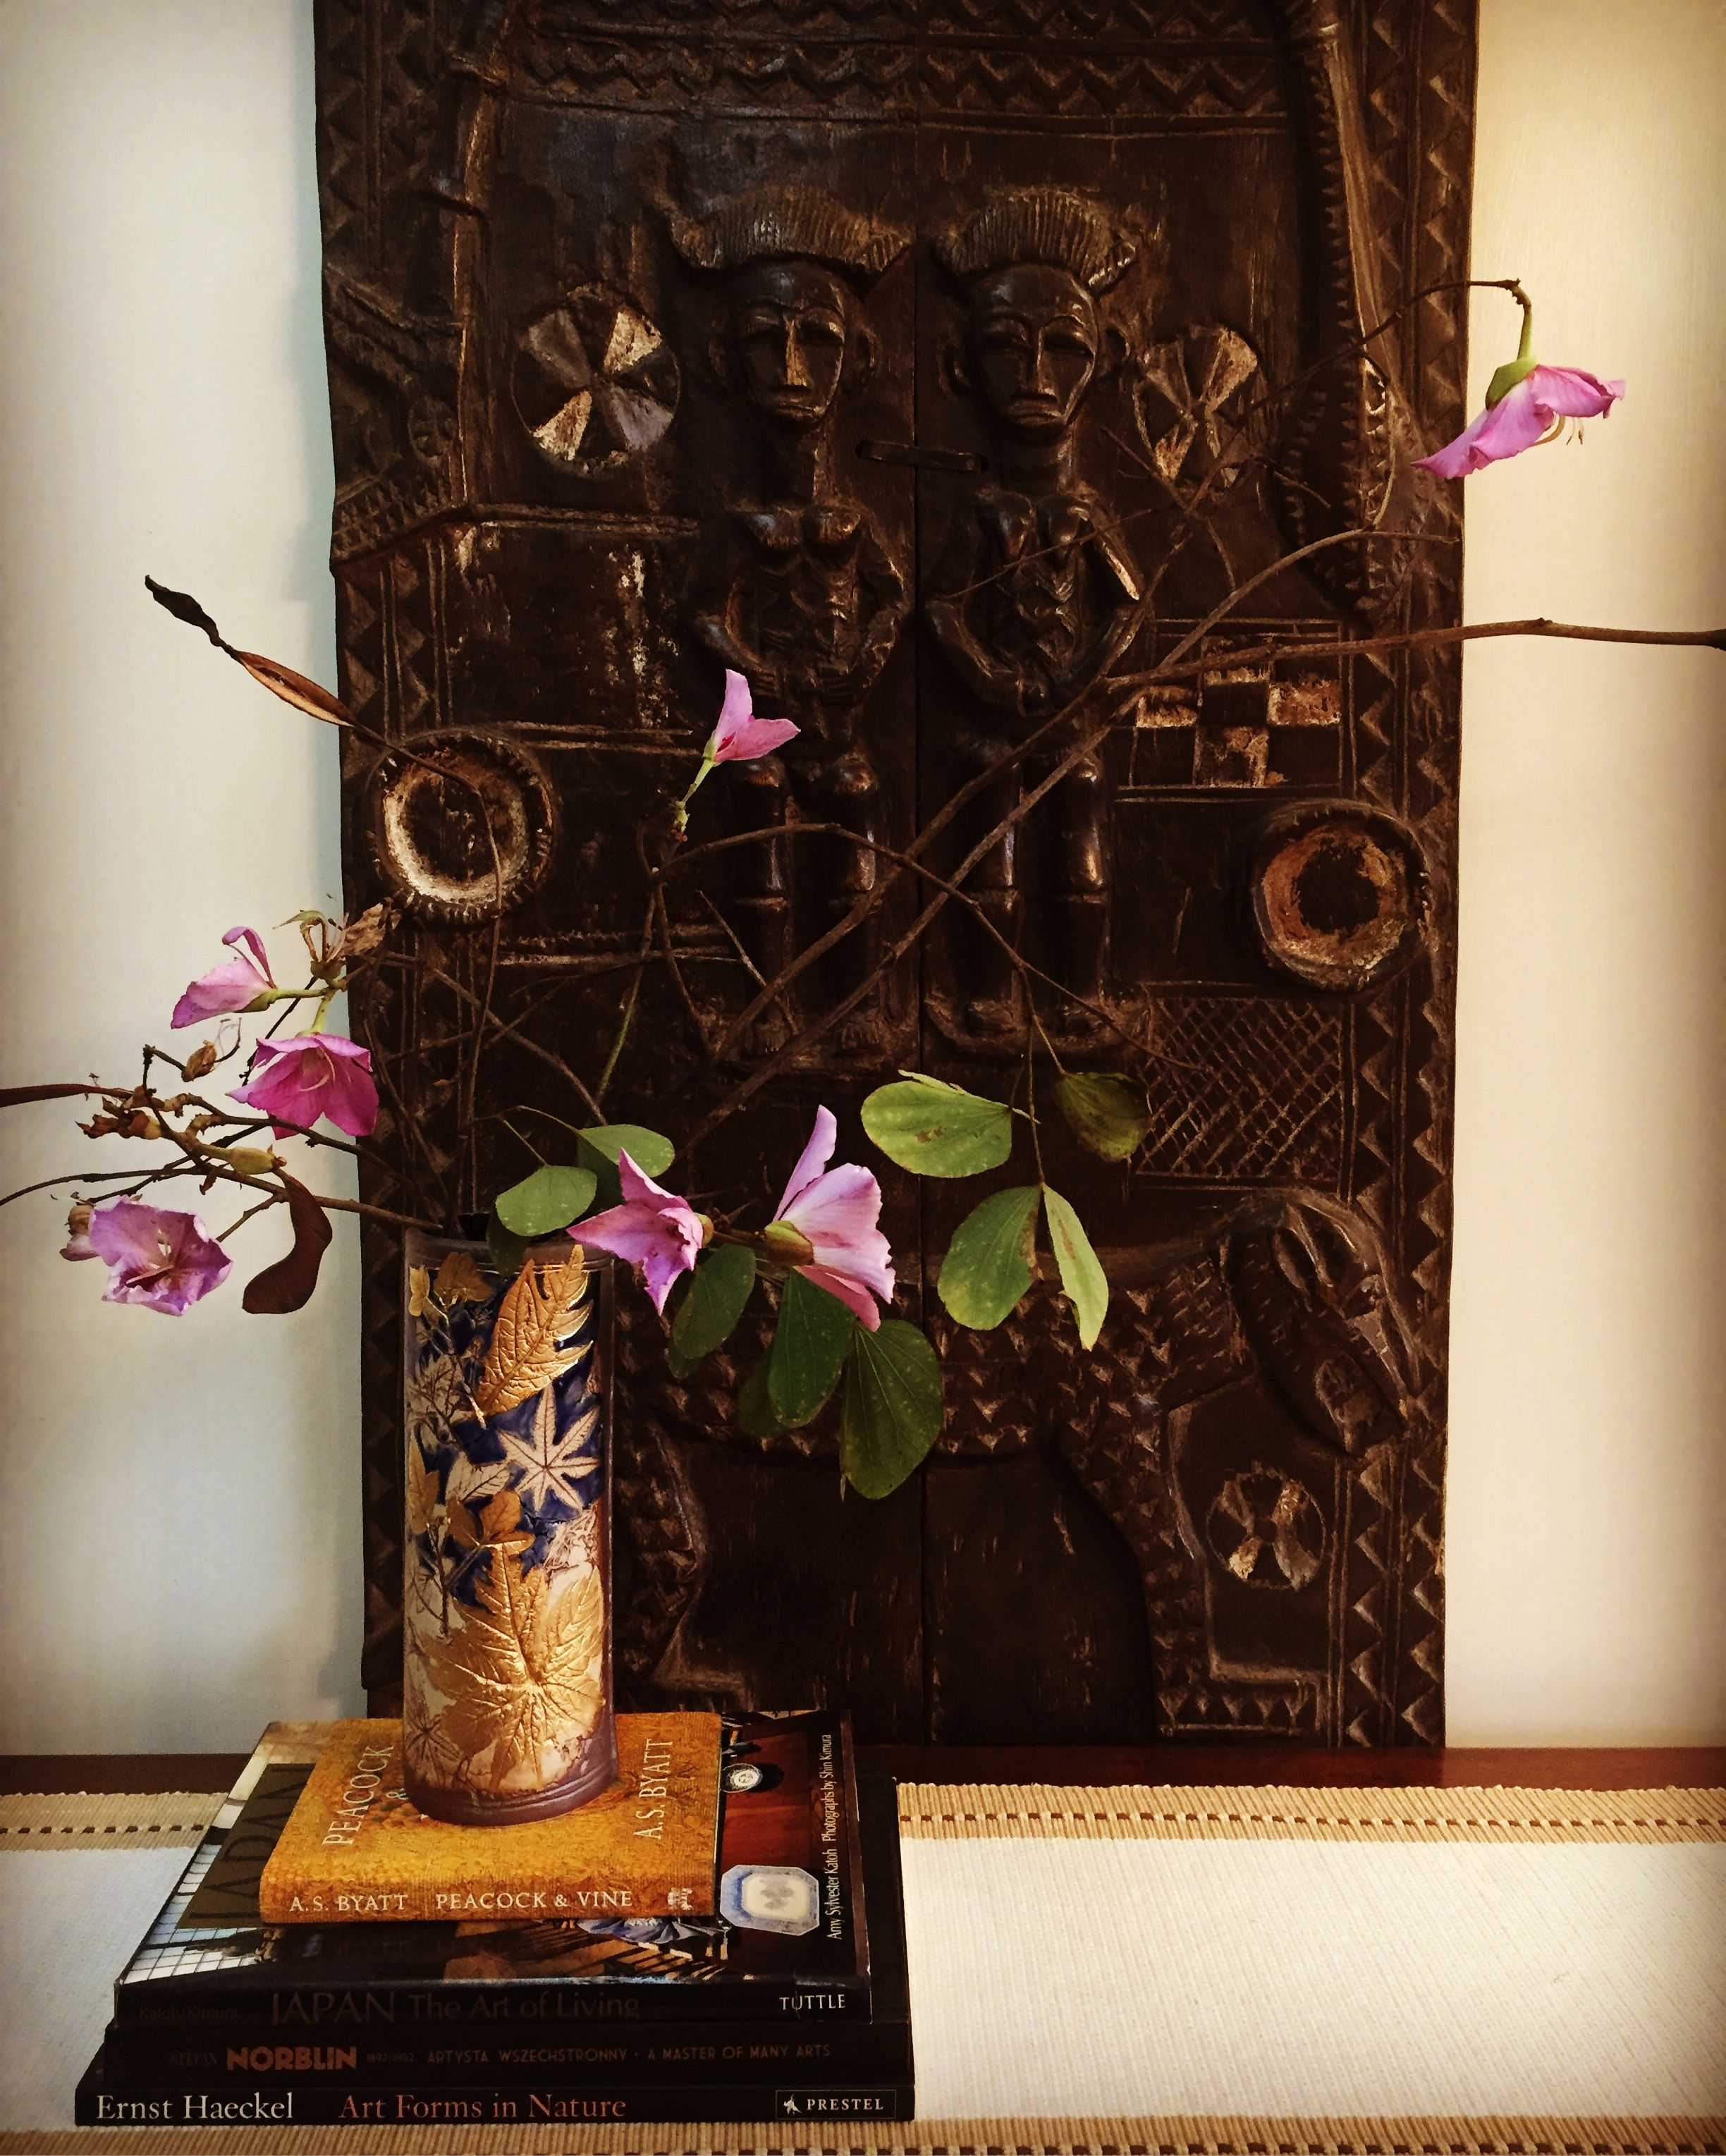 vignette from my home wooden carved screen from mali in the